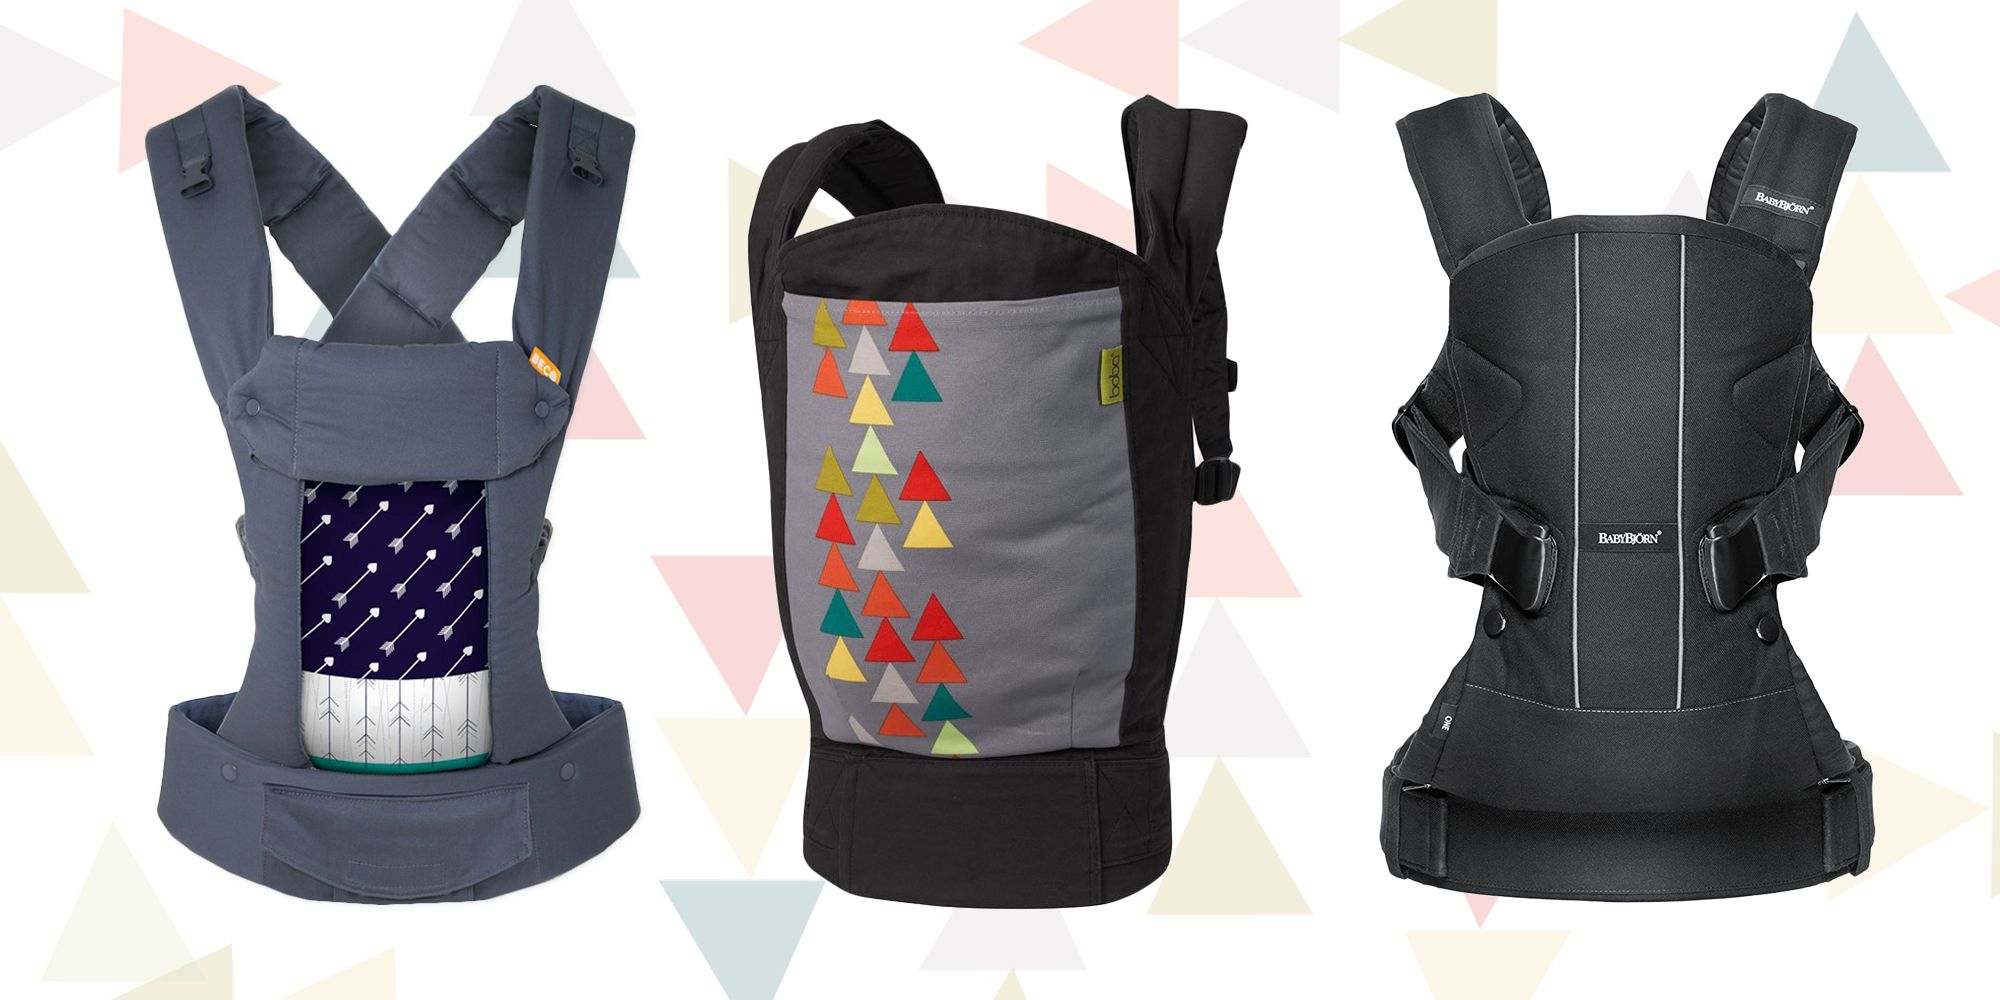 fc4168fbacc 15 Best Baby Carriers and Wraps in 2018 - Baby Carriers for Newborns and  Toddlers